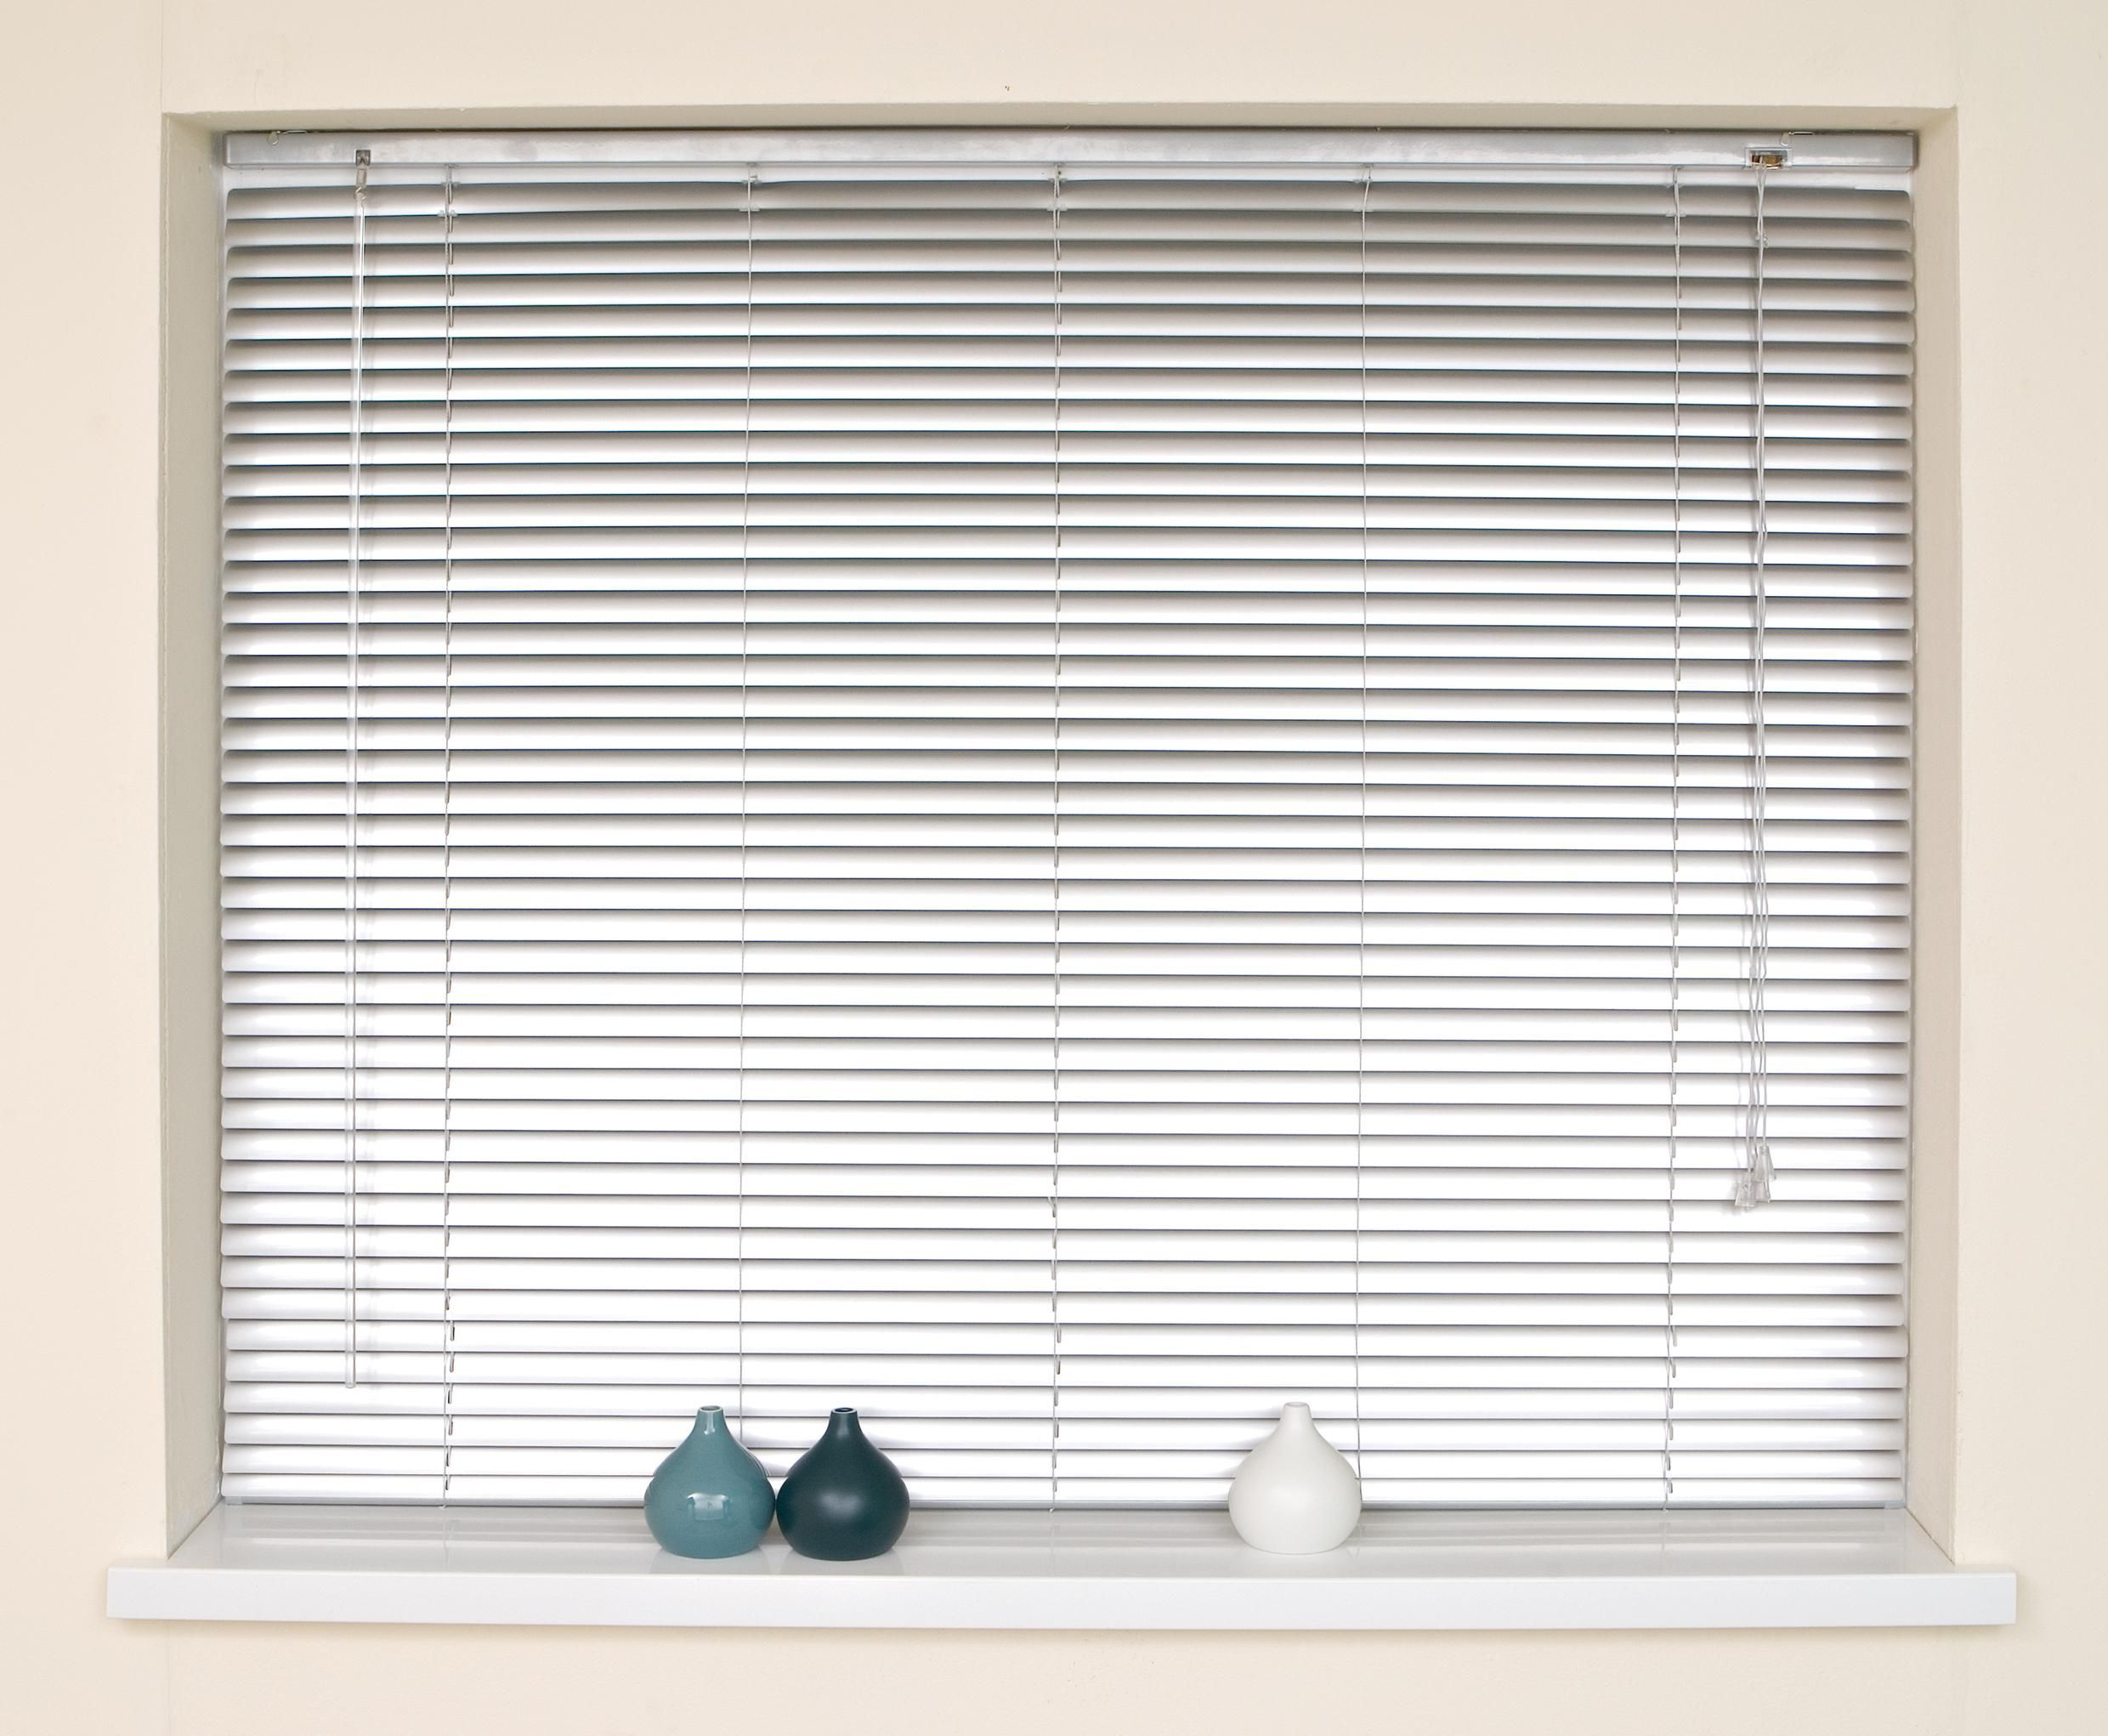 Venitian Blinds Blinds Cleaning Google Search Blinds Cleaning Services